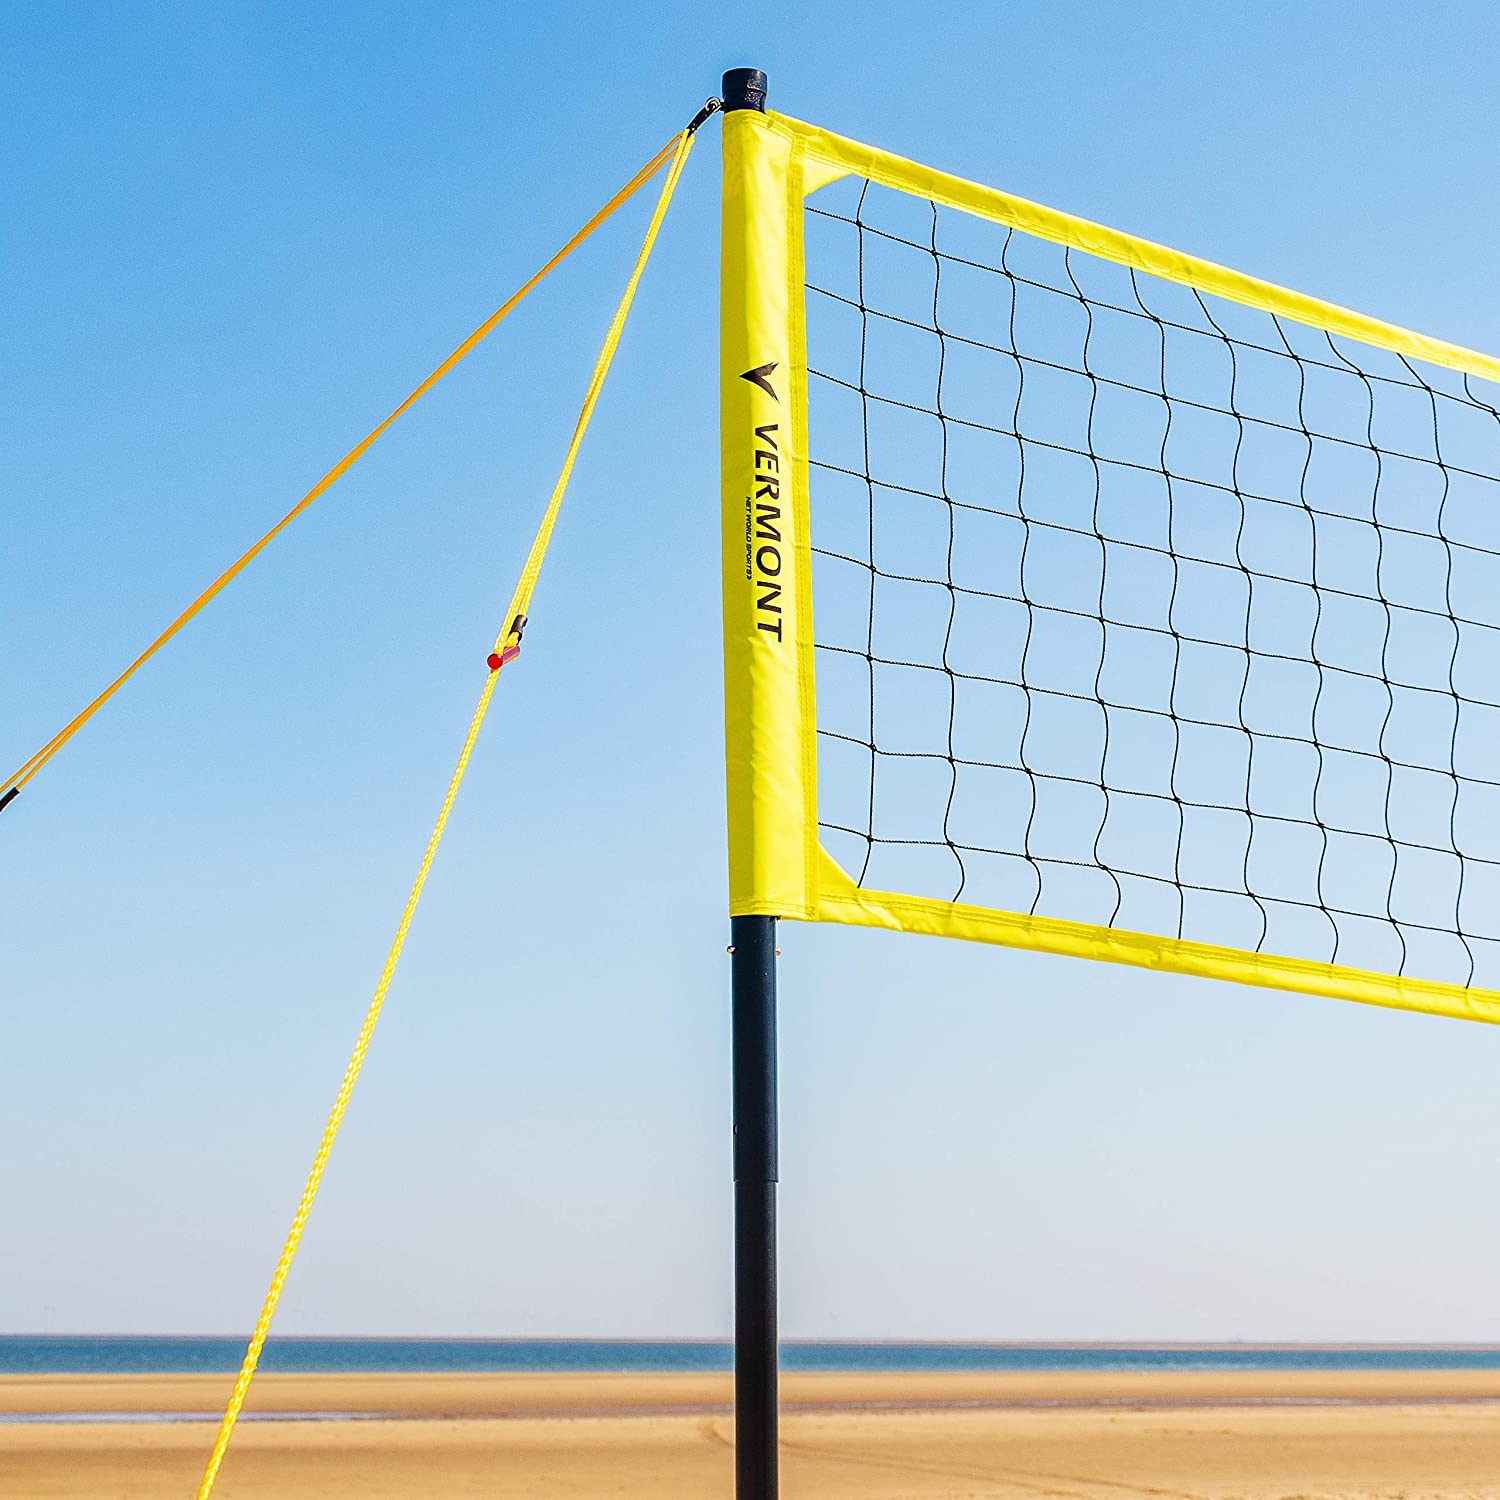 Vermont Portable Volleyball Set Aluminium Telescopic Posts Carry Bag Included Beach Set Amazon Co Uk Sports Outdoors